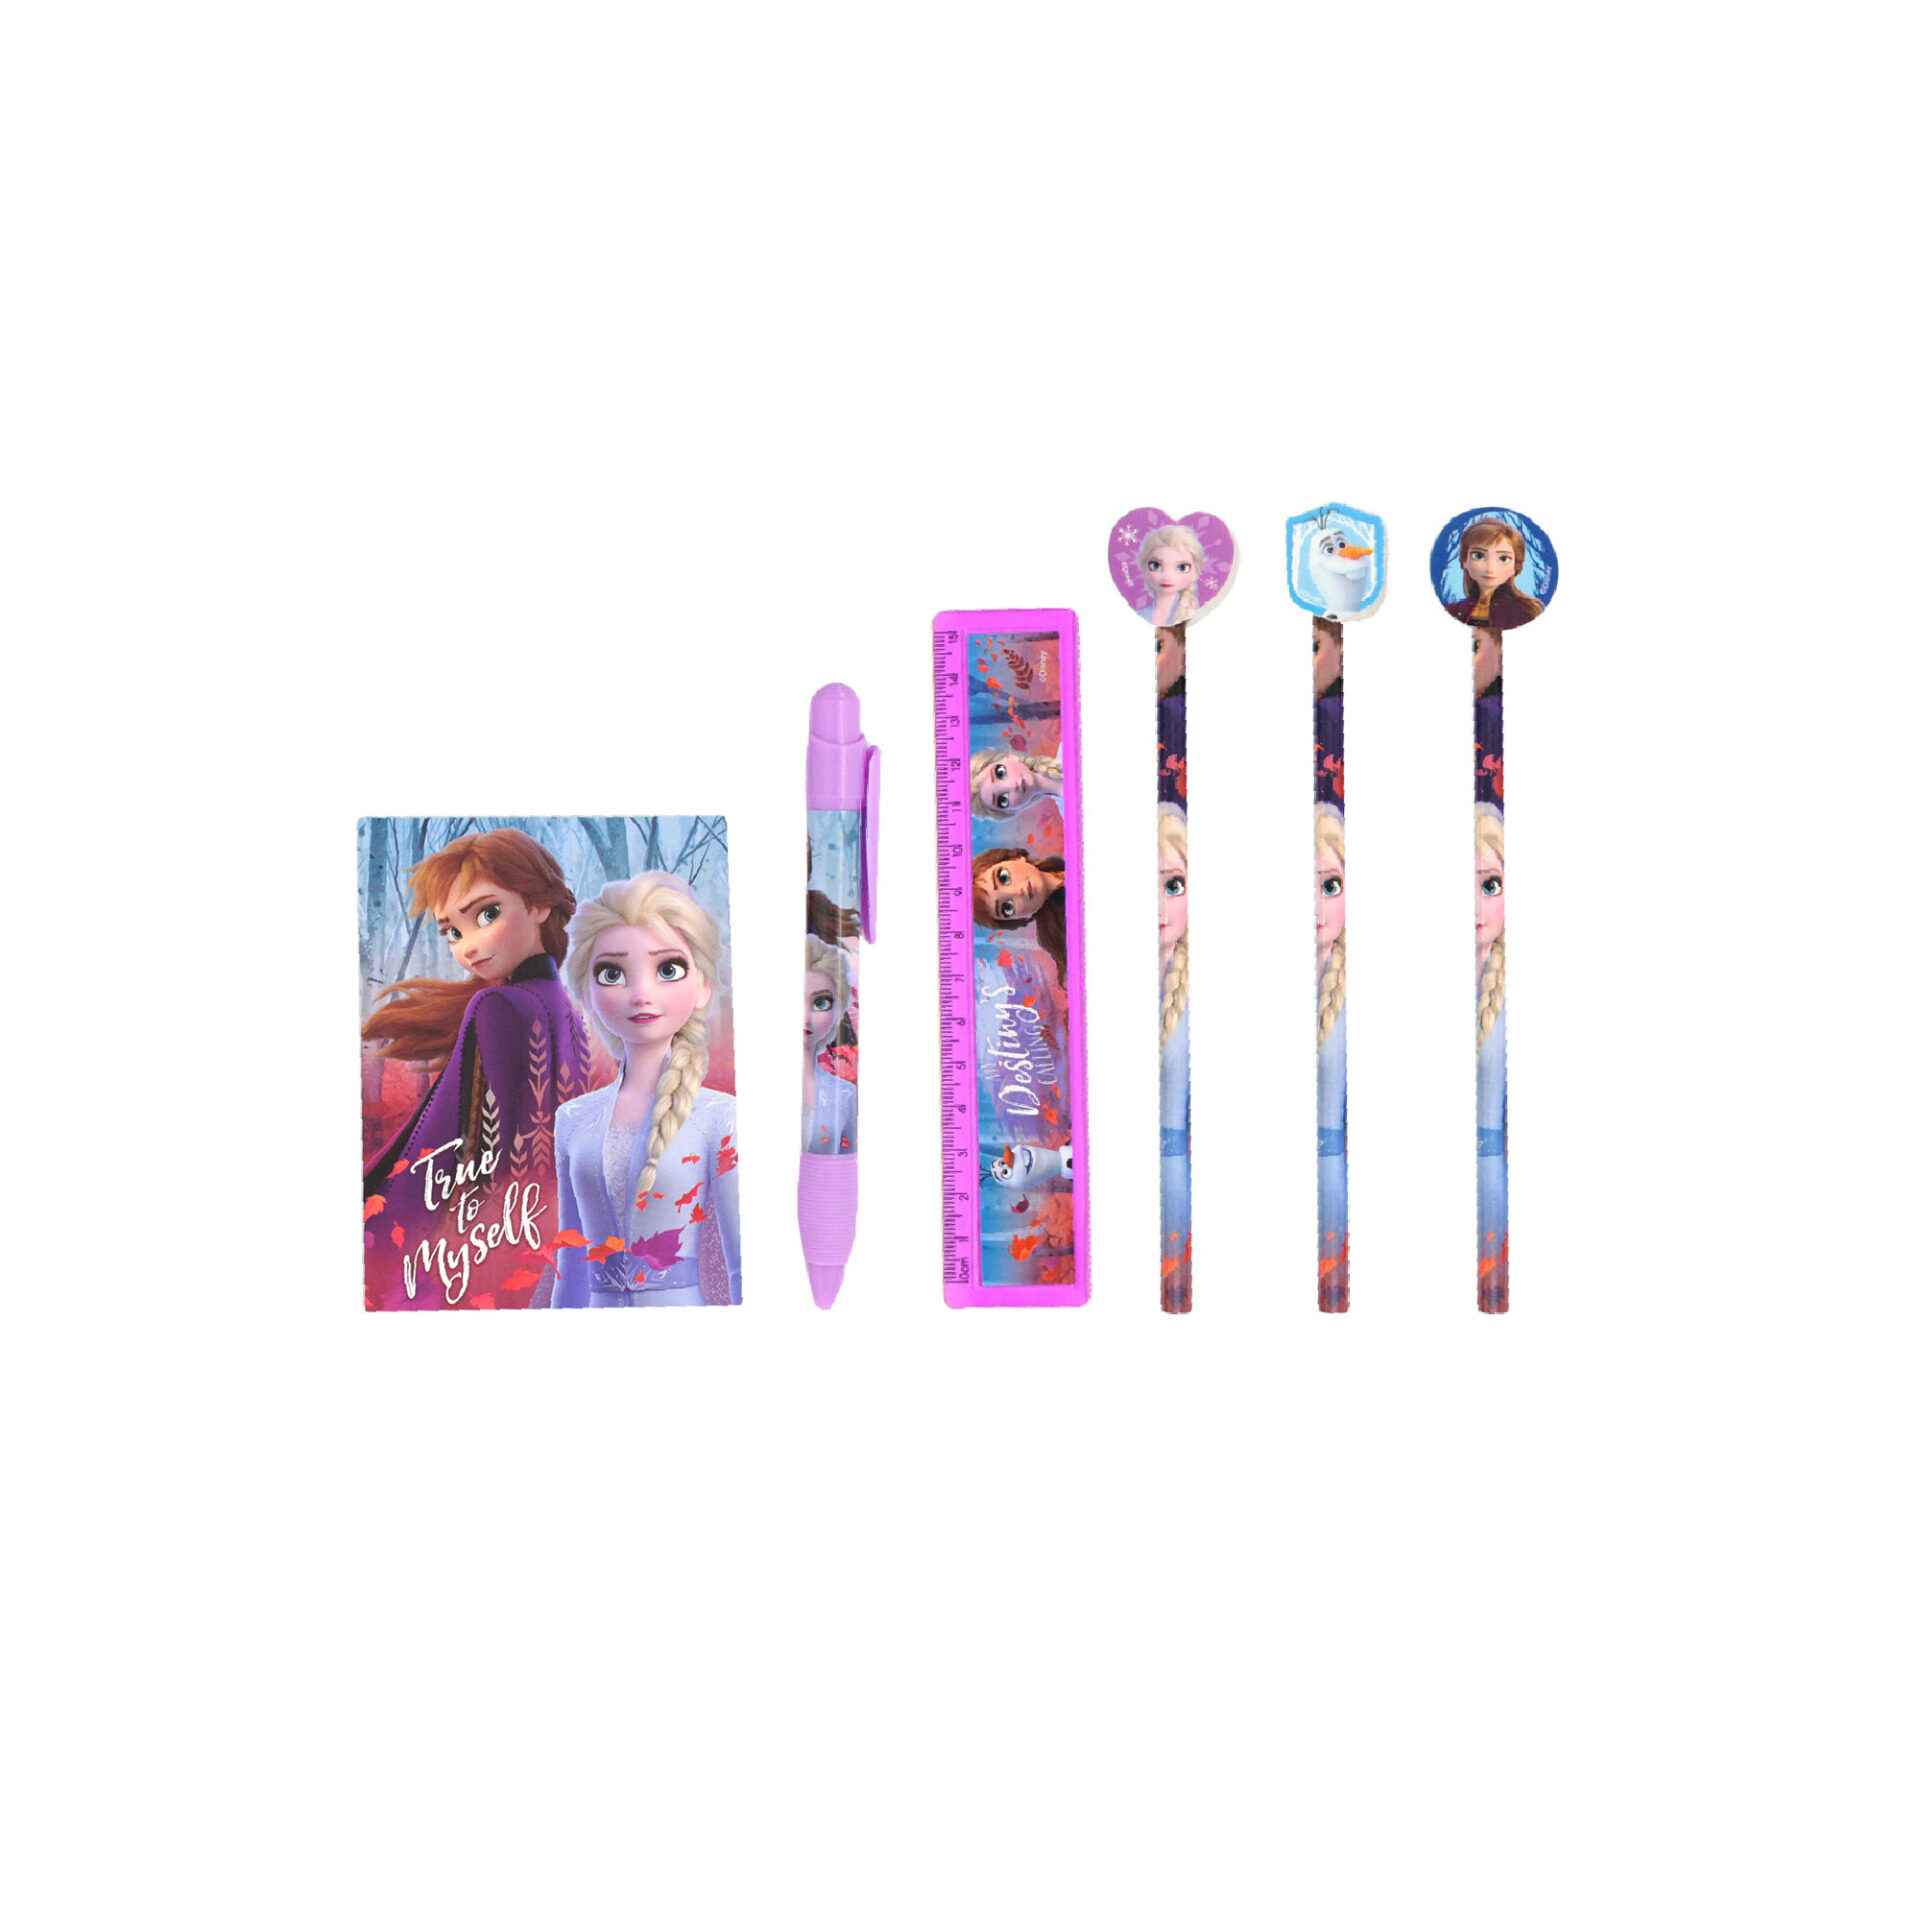 Disney Frozen 2 Princess Elsa & Anna All In 1 Big Stationery Case - 3 Pencils, 1 Mechnical Pencil, Ruler & Mini Notepad (Dark Purple)